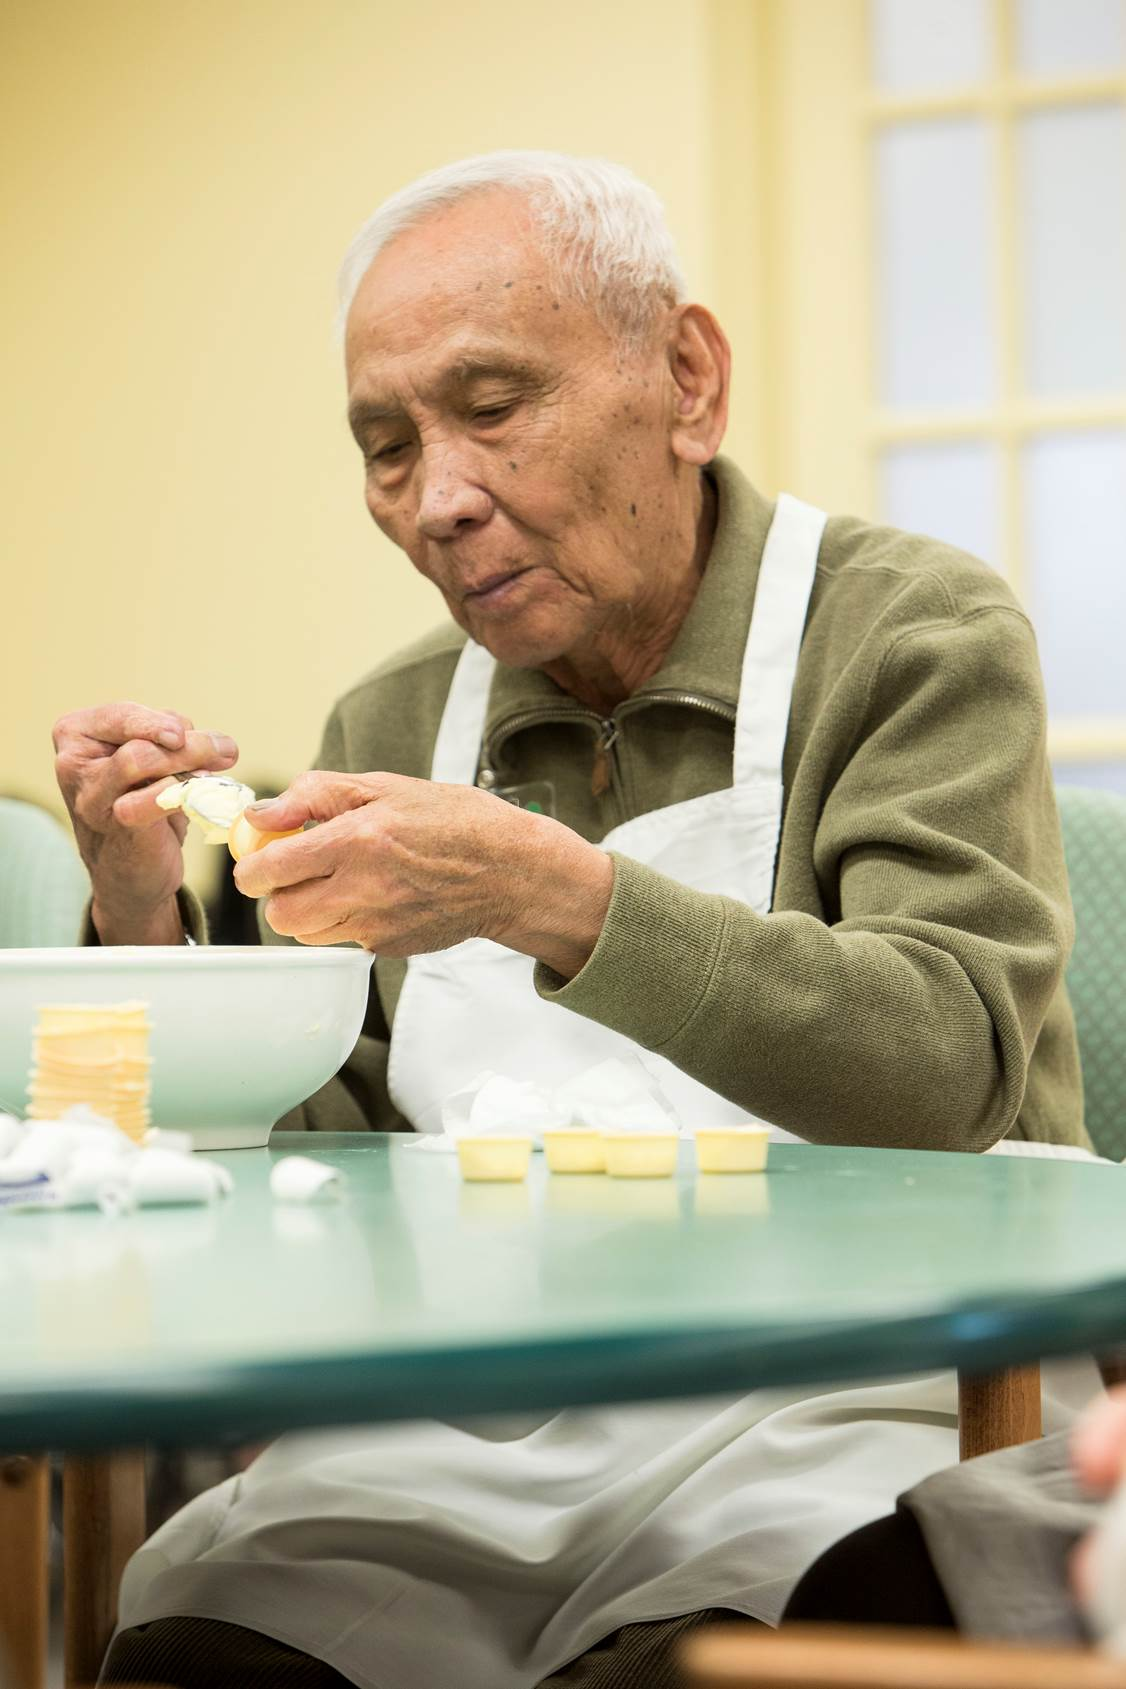 Participant in an Adult Day Services program doing some baking